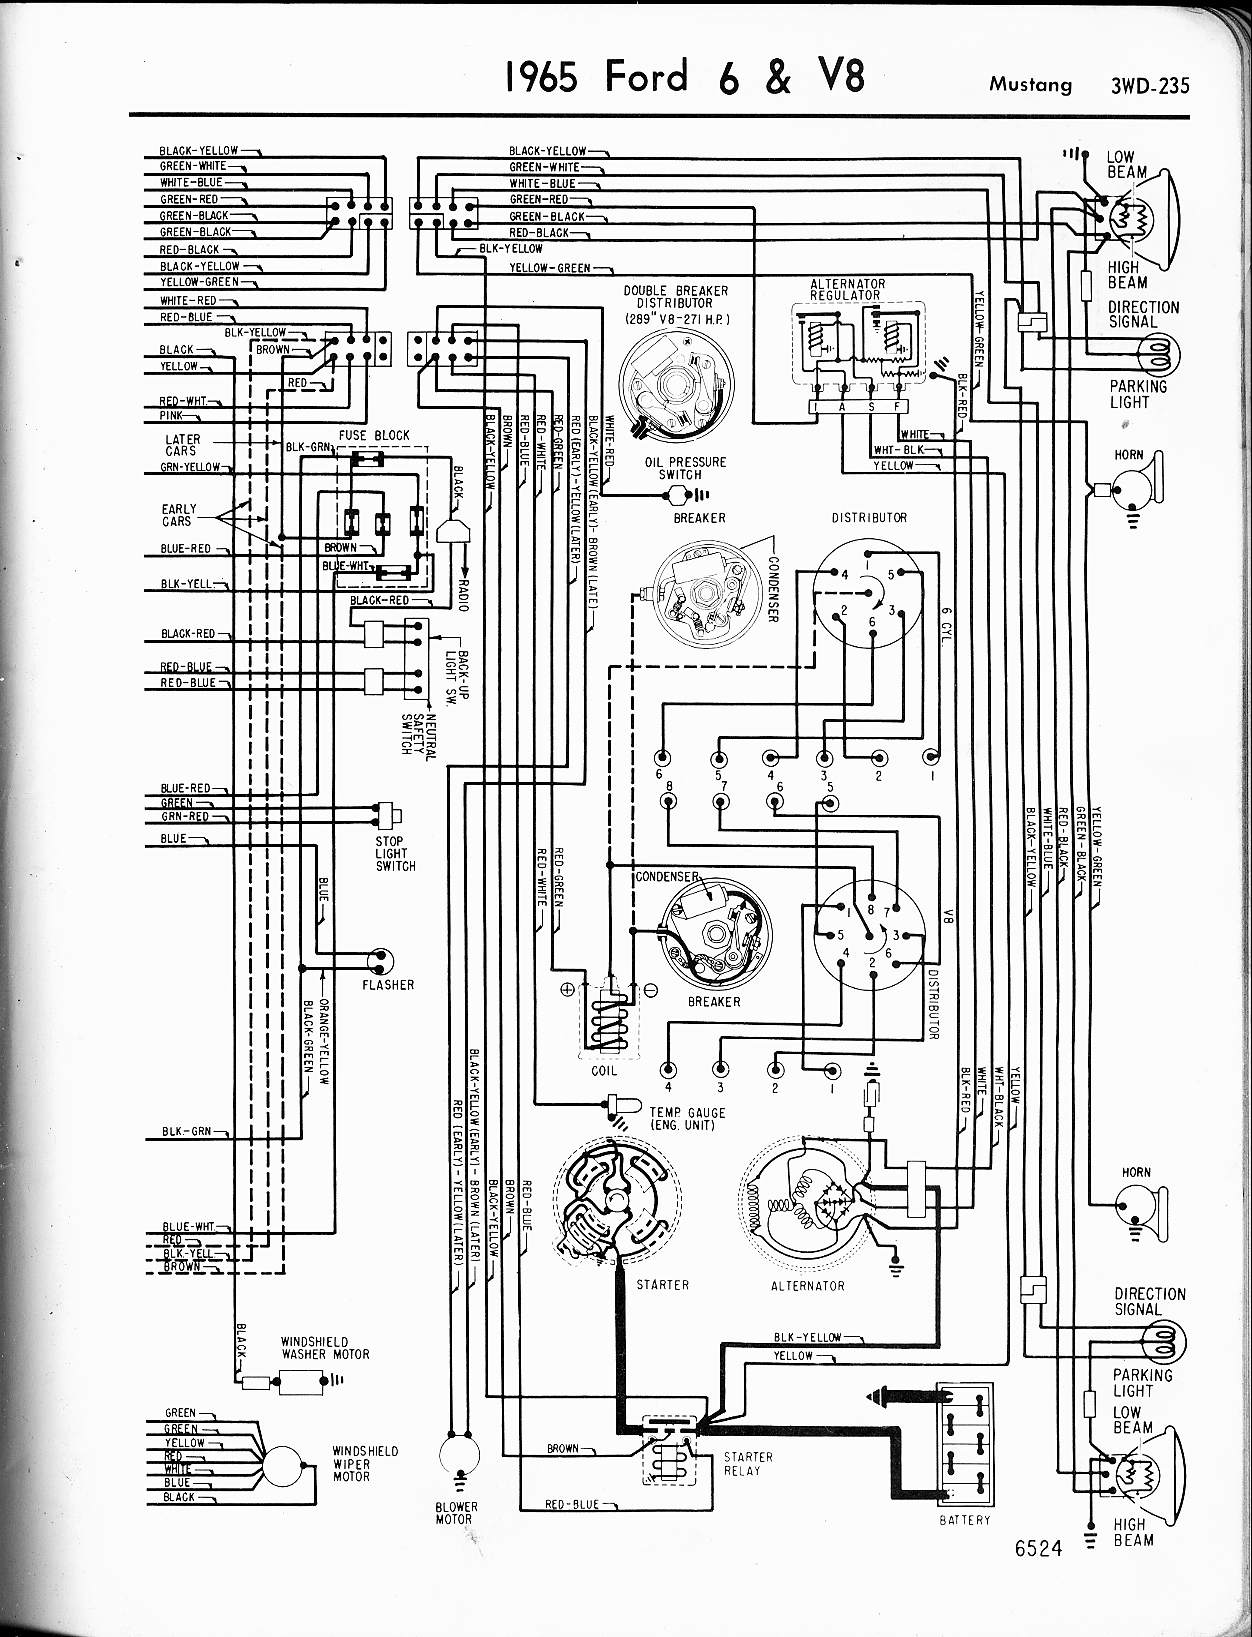 hight resolution of 1969 mustang fuse diagram wiring diagram schematics 69 mustang tail light 69 mustang fuse box